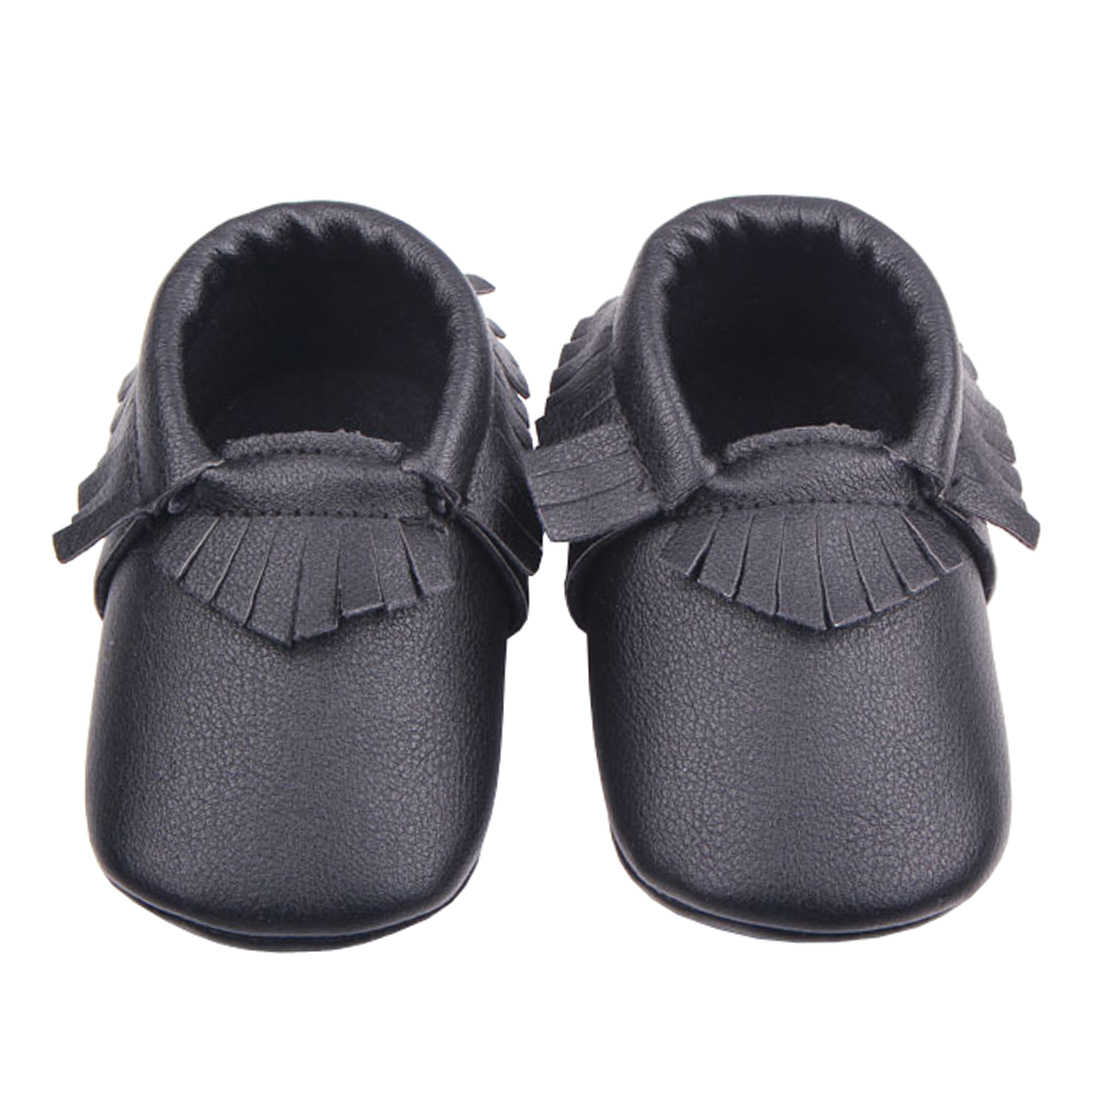 Fashion Baby Boy Shoes Soft Sole Moccasins Pu Leather Toddler Tassel First Walkers Slip On Newborn Loafers Infant Girl Slippers First Walkers Aliexpress